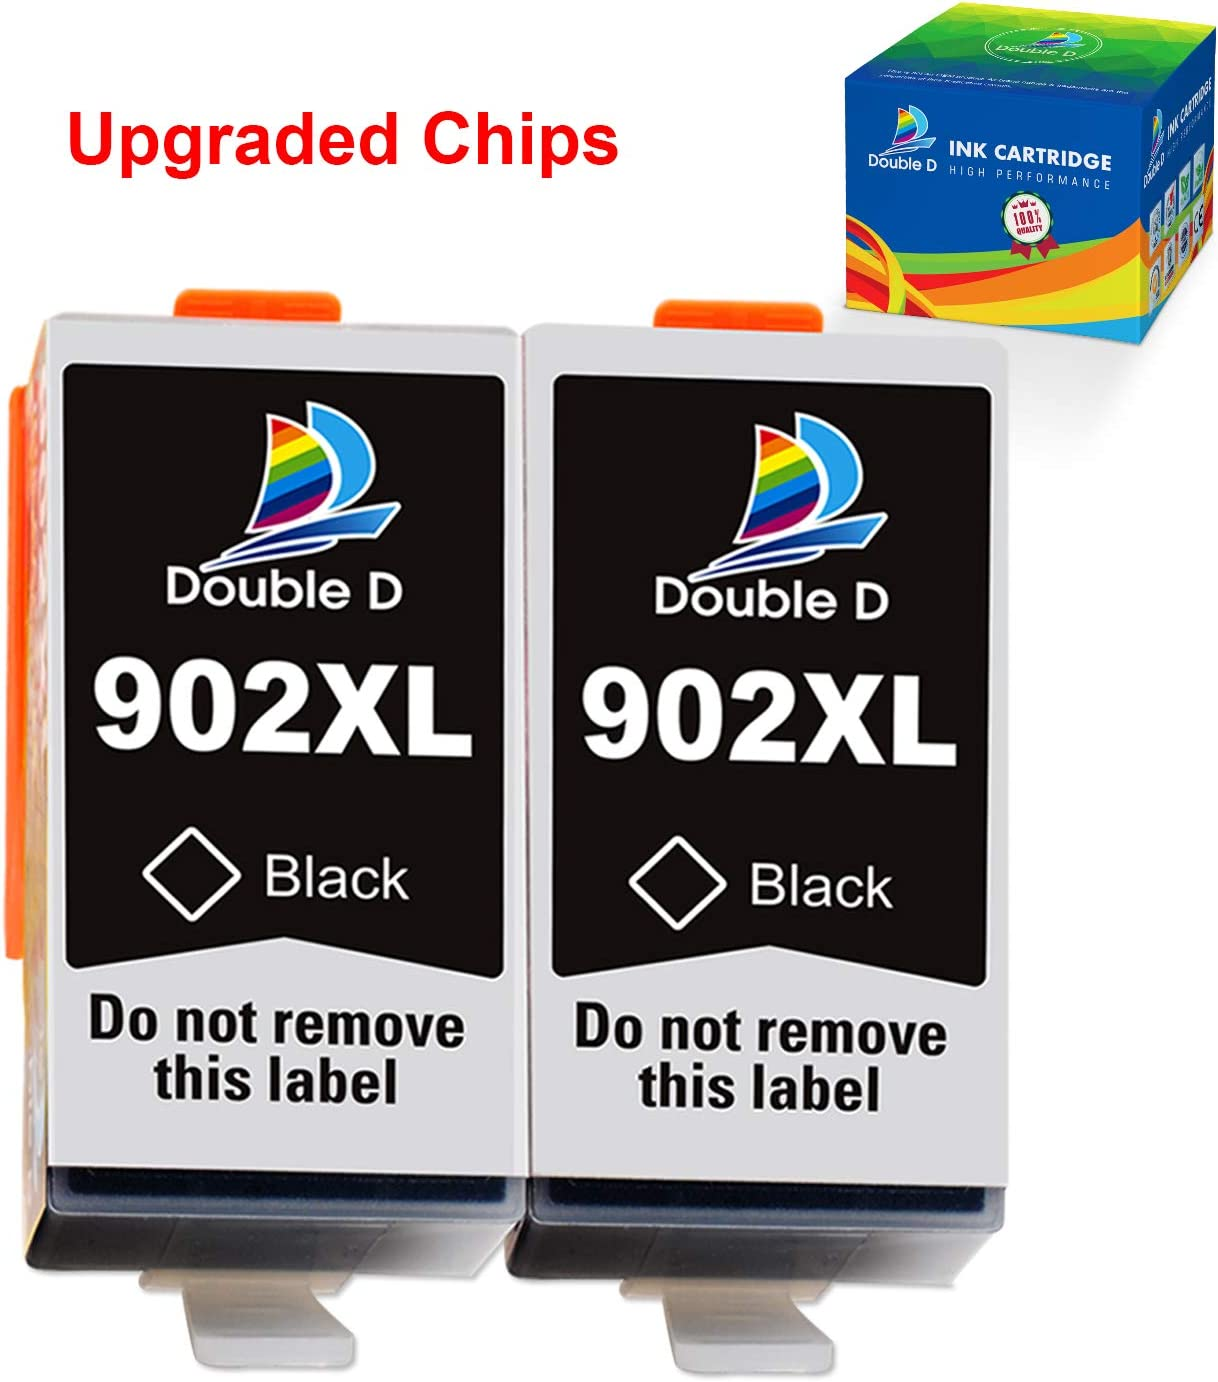 DOUBLE D 902 Ink Cartridge Compatible Replacement for HP 902 902XL Black (Upgrade Chip) for HP OfficeJet Pro 6978 6962 6968 6975 6960 6970 6950 6954 6979 6951 Printer (2Black)